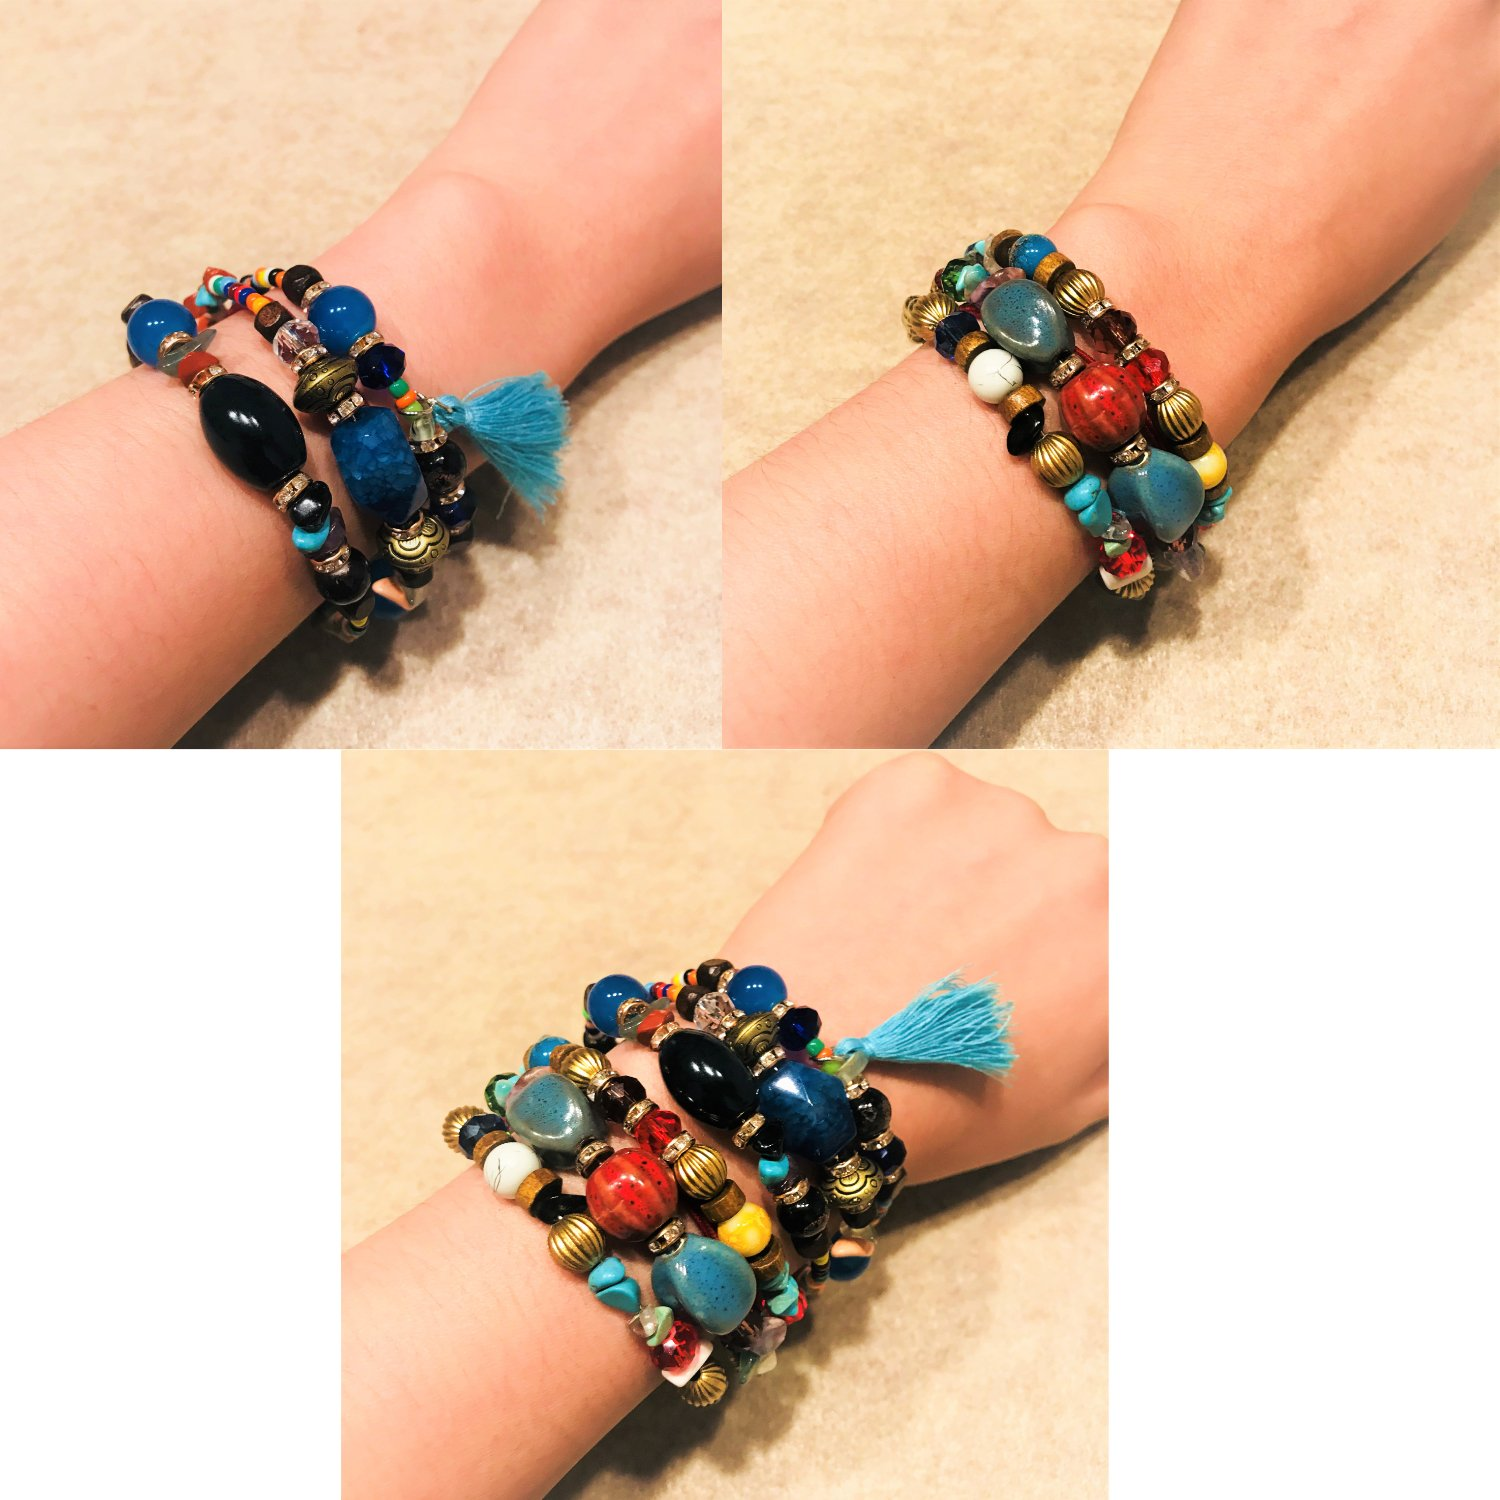 ISAACSONG.DESIGN Bohemian Multilayer Healing Stone Crystal Beads Charm Tribal Wrap Bangle Bracelet for Women (2 Pcs Colorful Beaded) by ISAACSONG.DESIGN (Image #6)